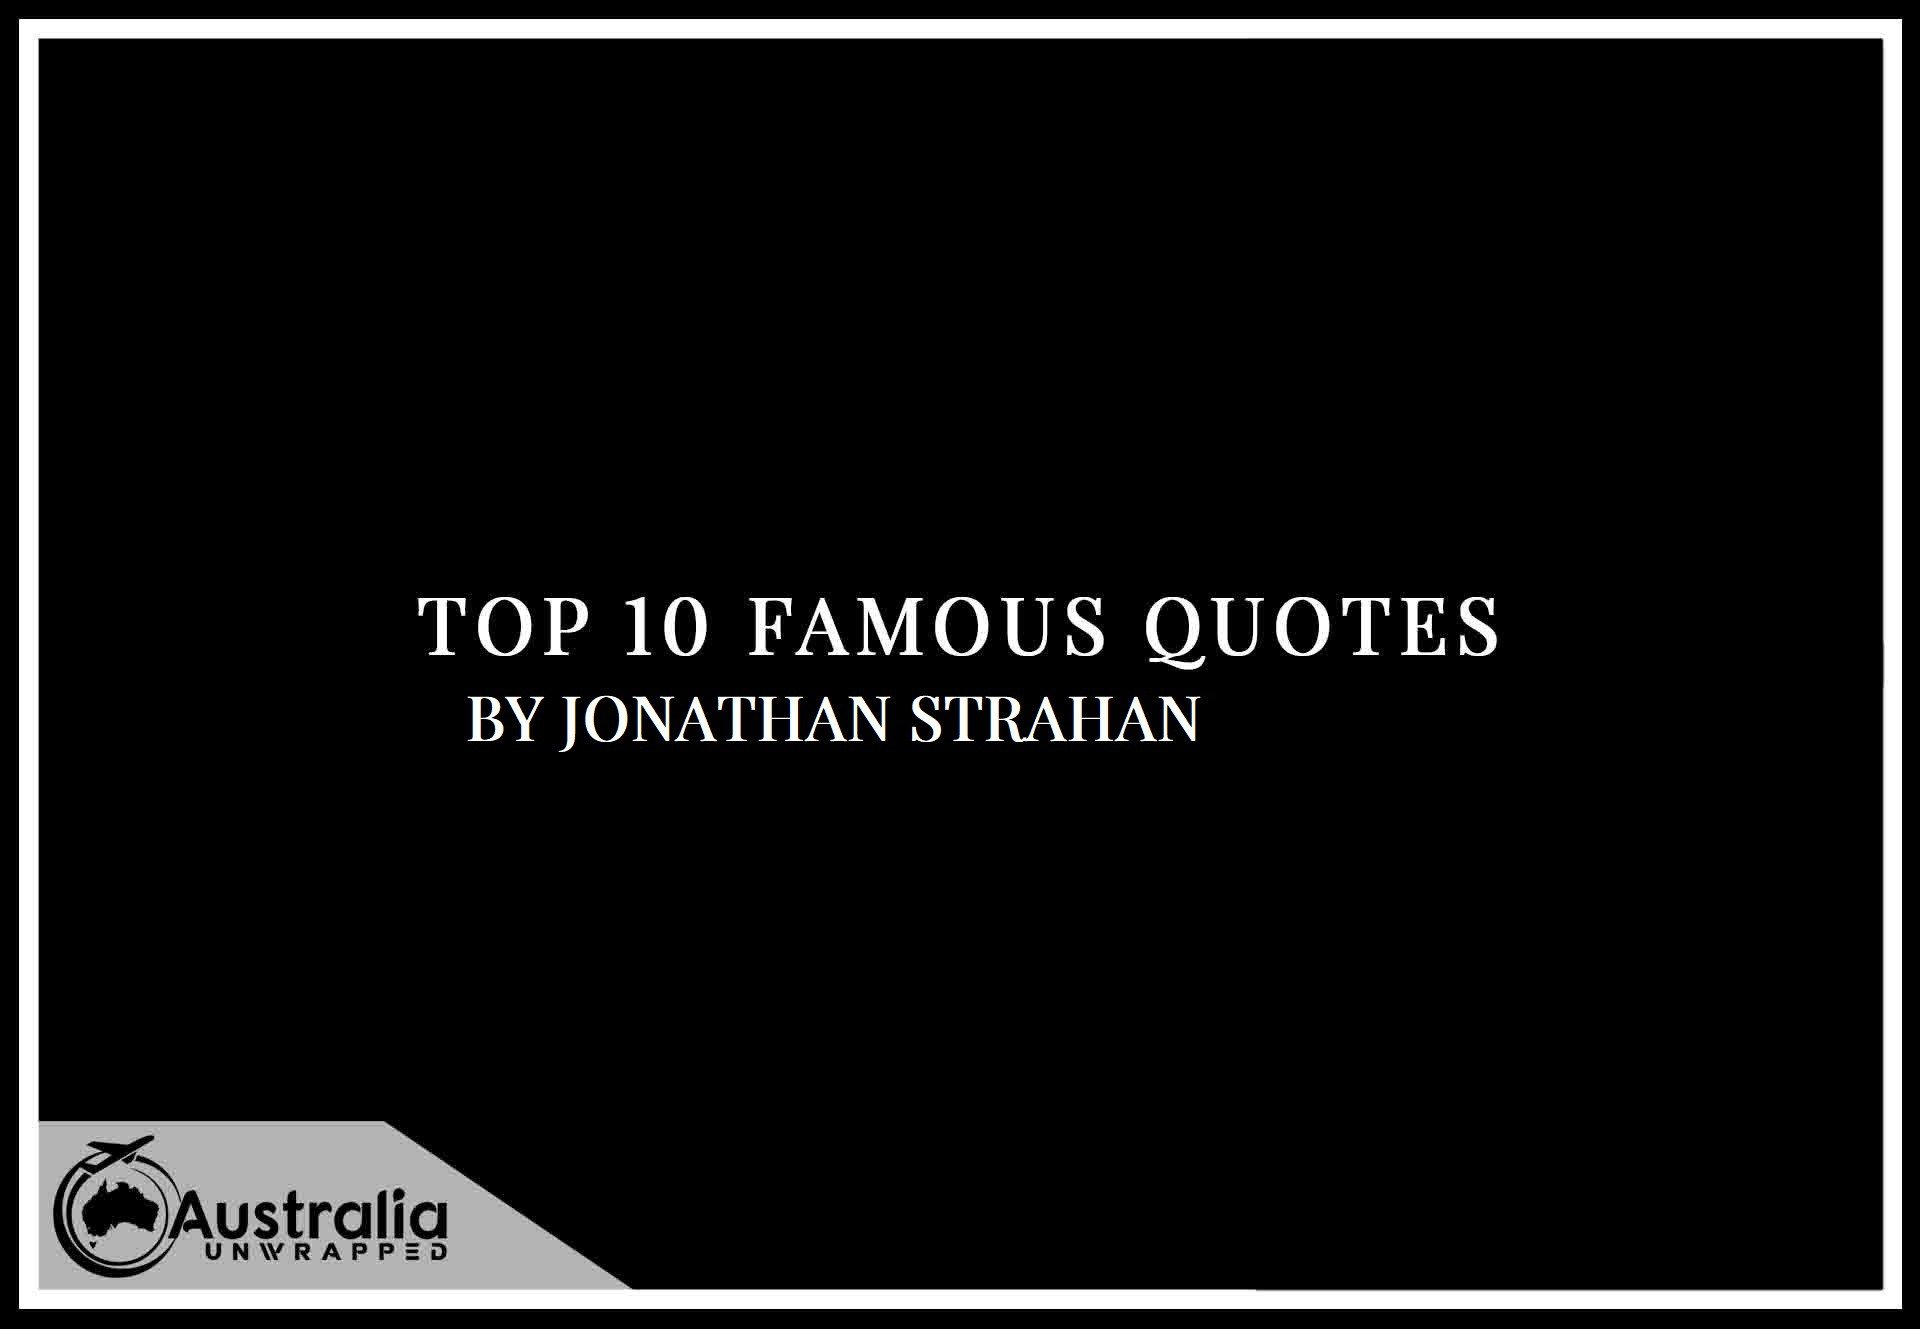 Top 10 Famous Quotes by Author Jonathan Strahan